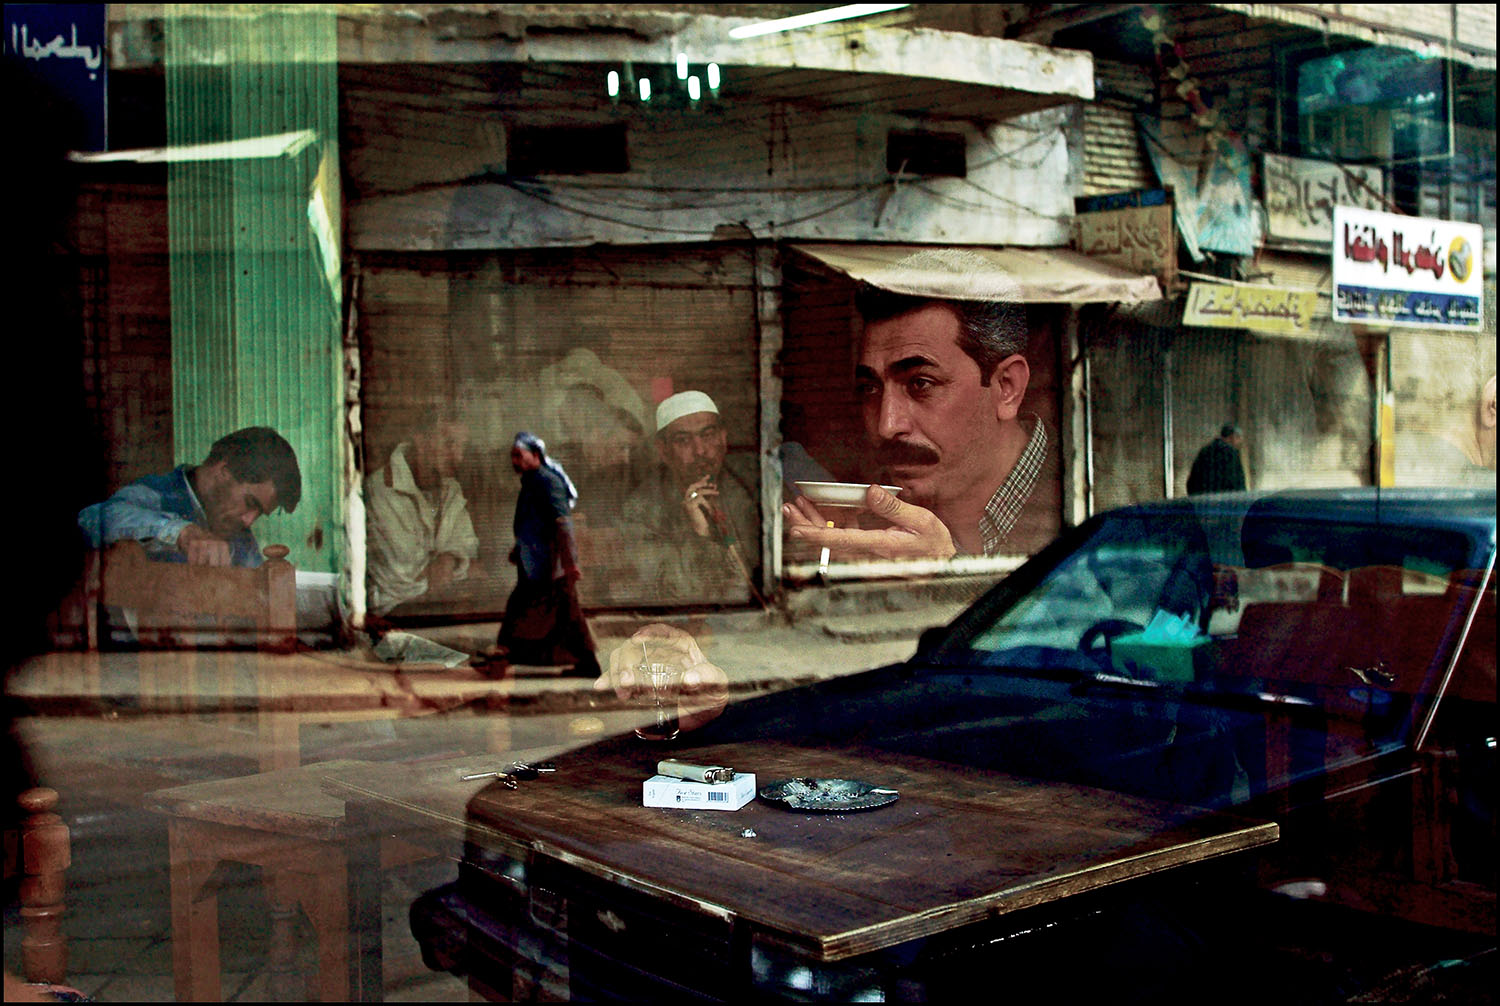 Correct Caption:Baghdad February 12, 2003. Six weeks before the start of the war, a man sits drinking tea at the Al Zahawi cafe on Rashid Street. Cafes are a trademark of this ancient city, gathering places where men play dominos, blackjack and socialize. Photo by Bruno Stevens